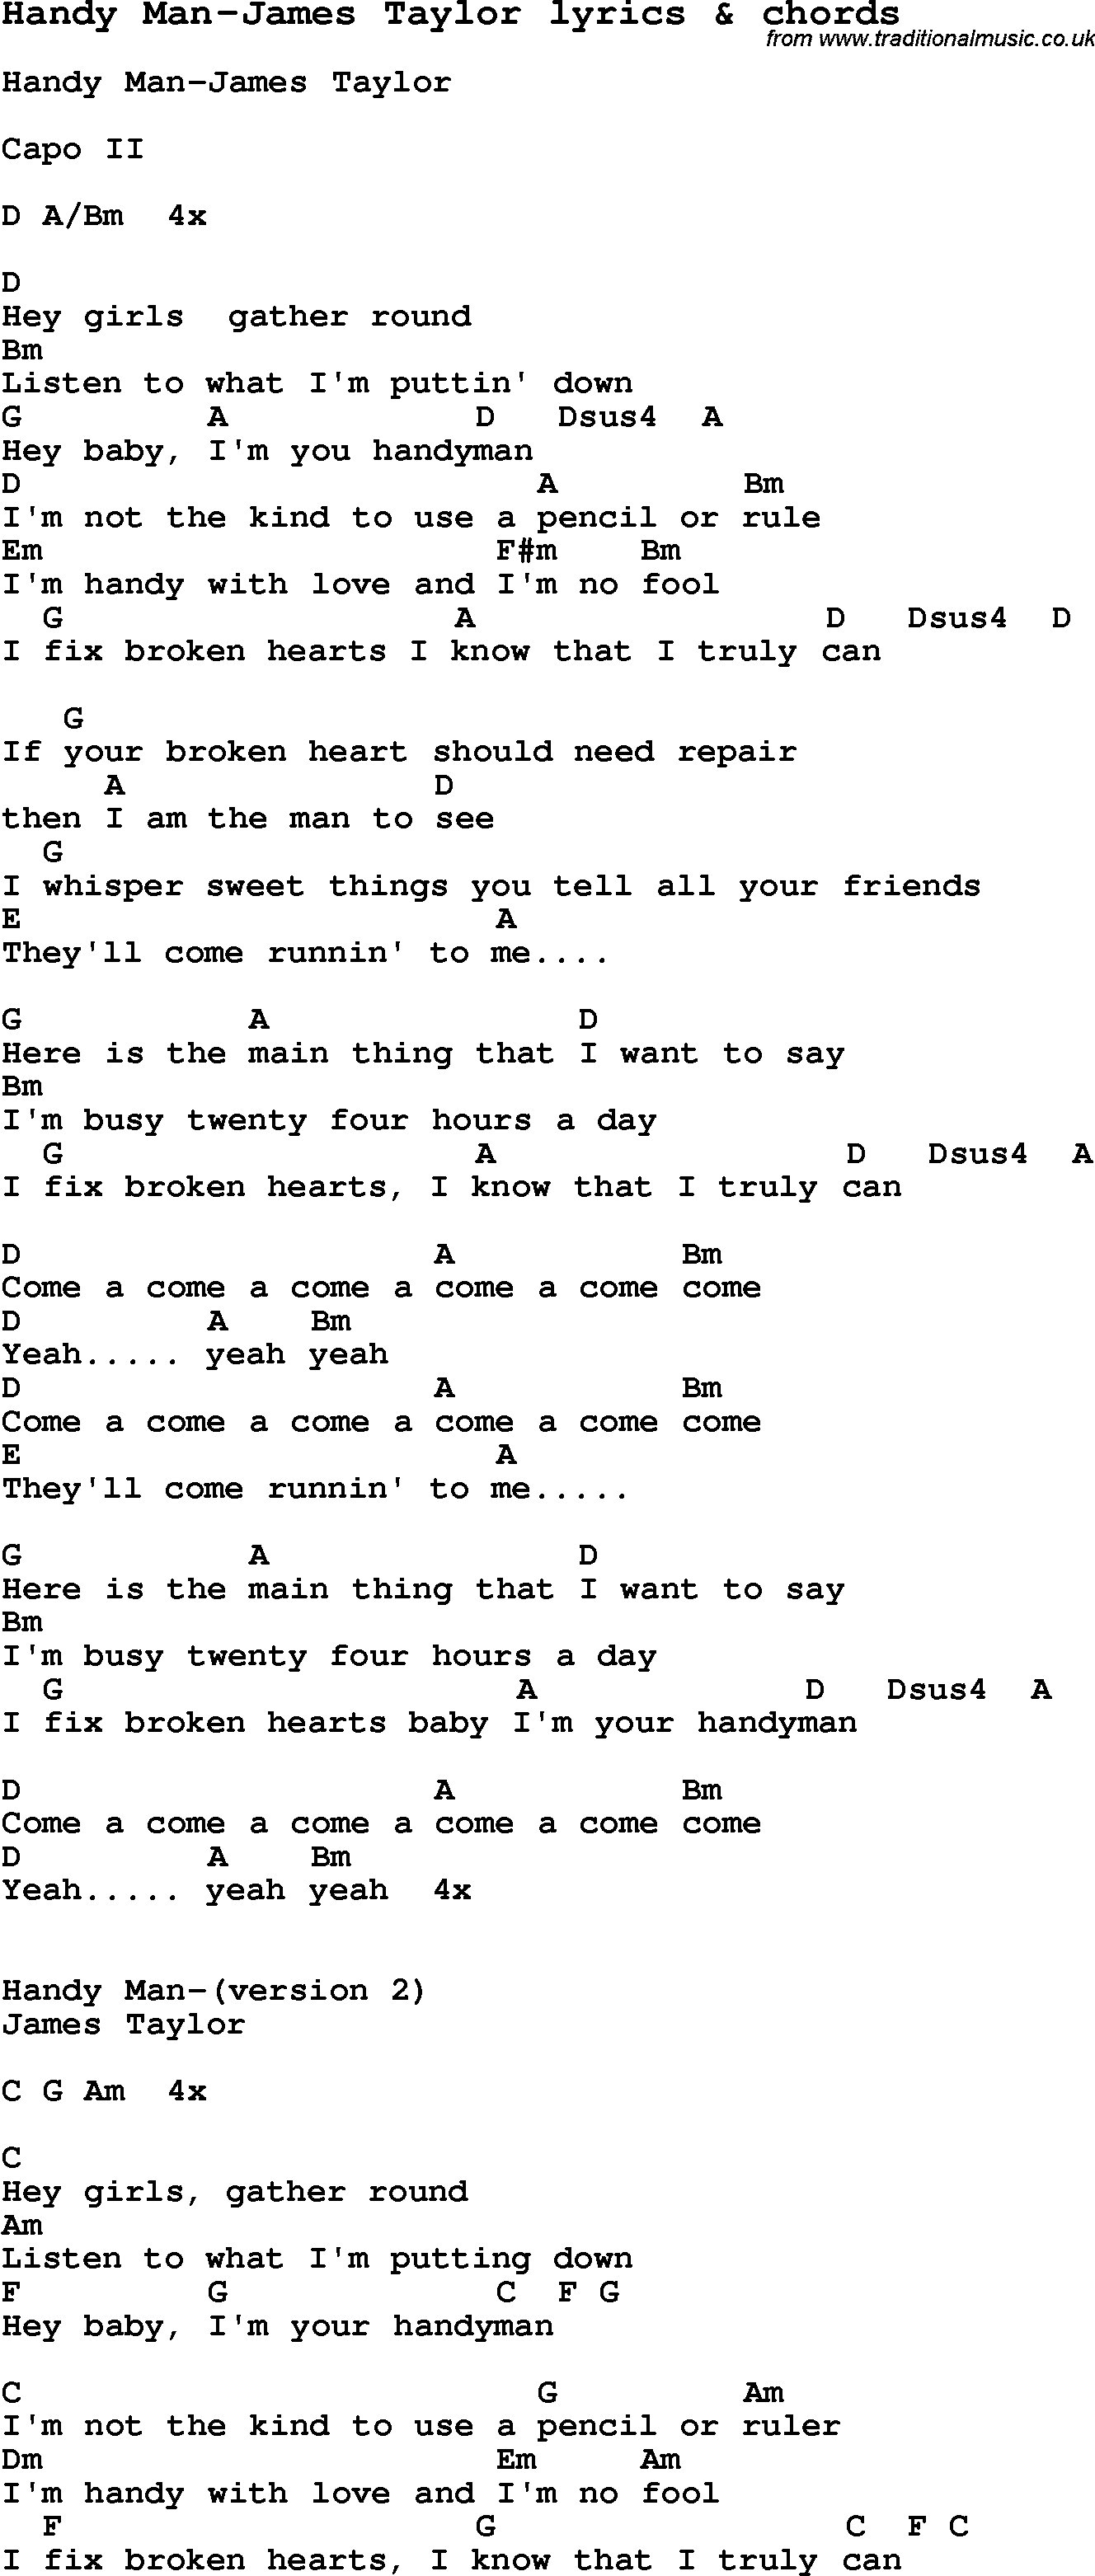 Love Song Lyrics for:Handy Man-James Taylor with chords